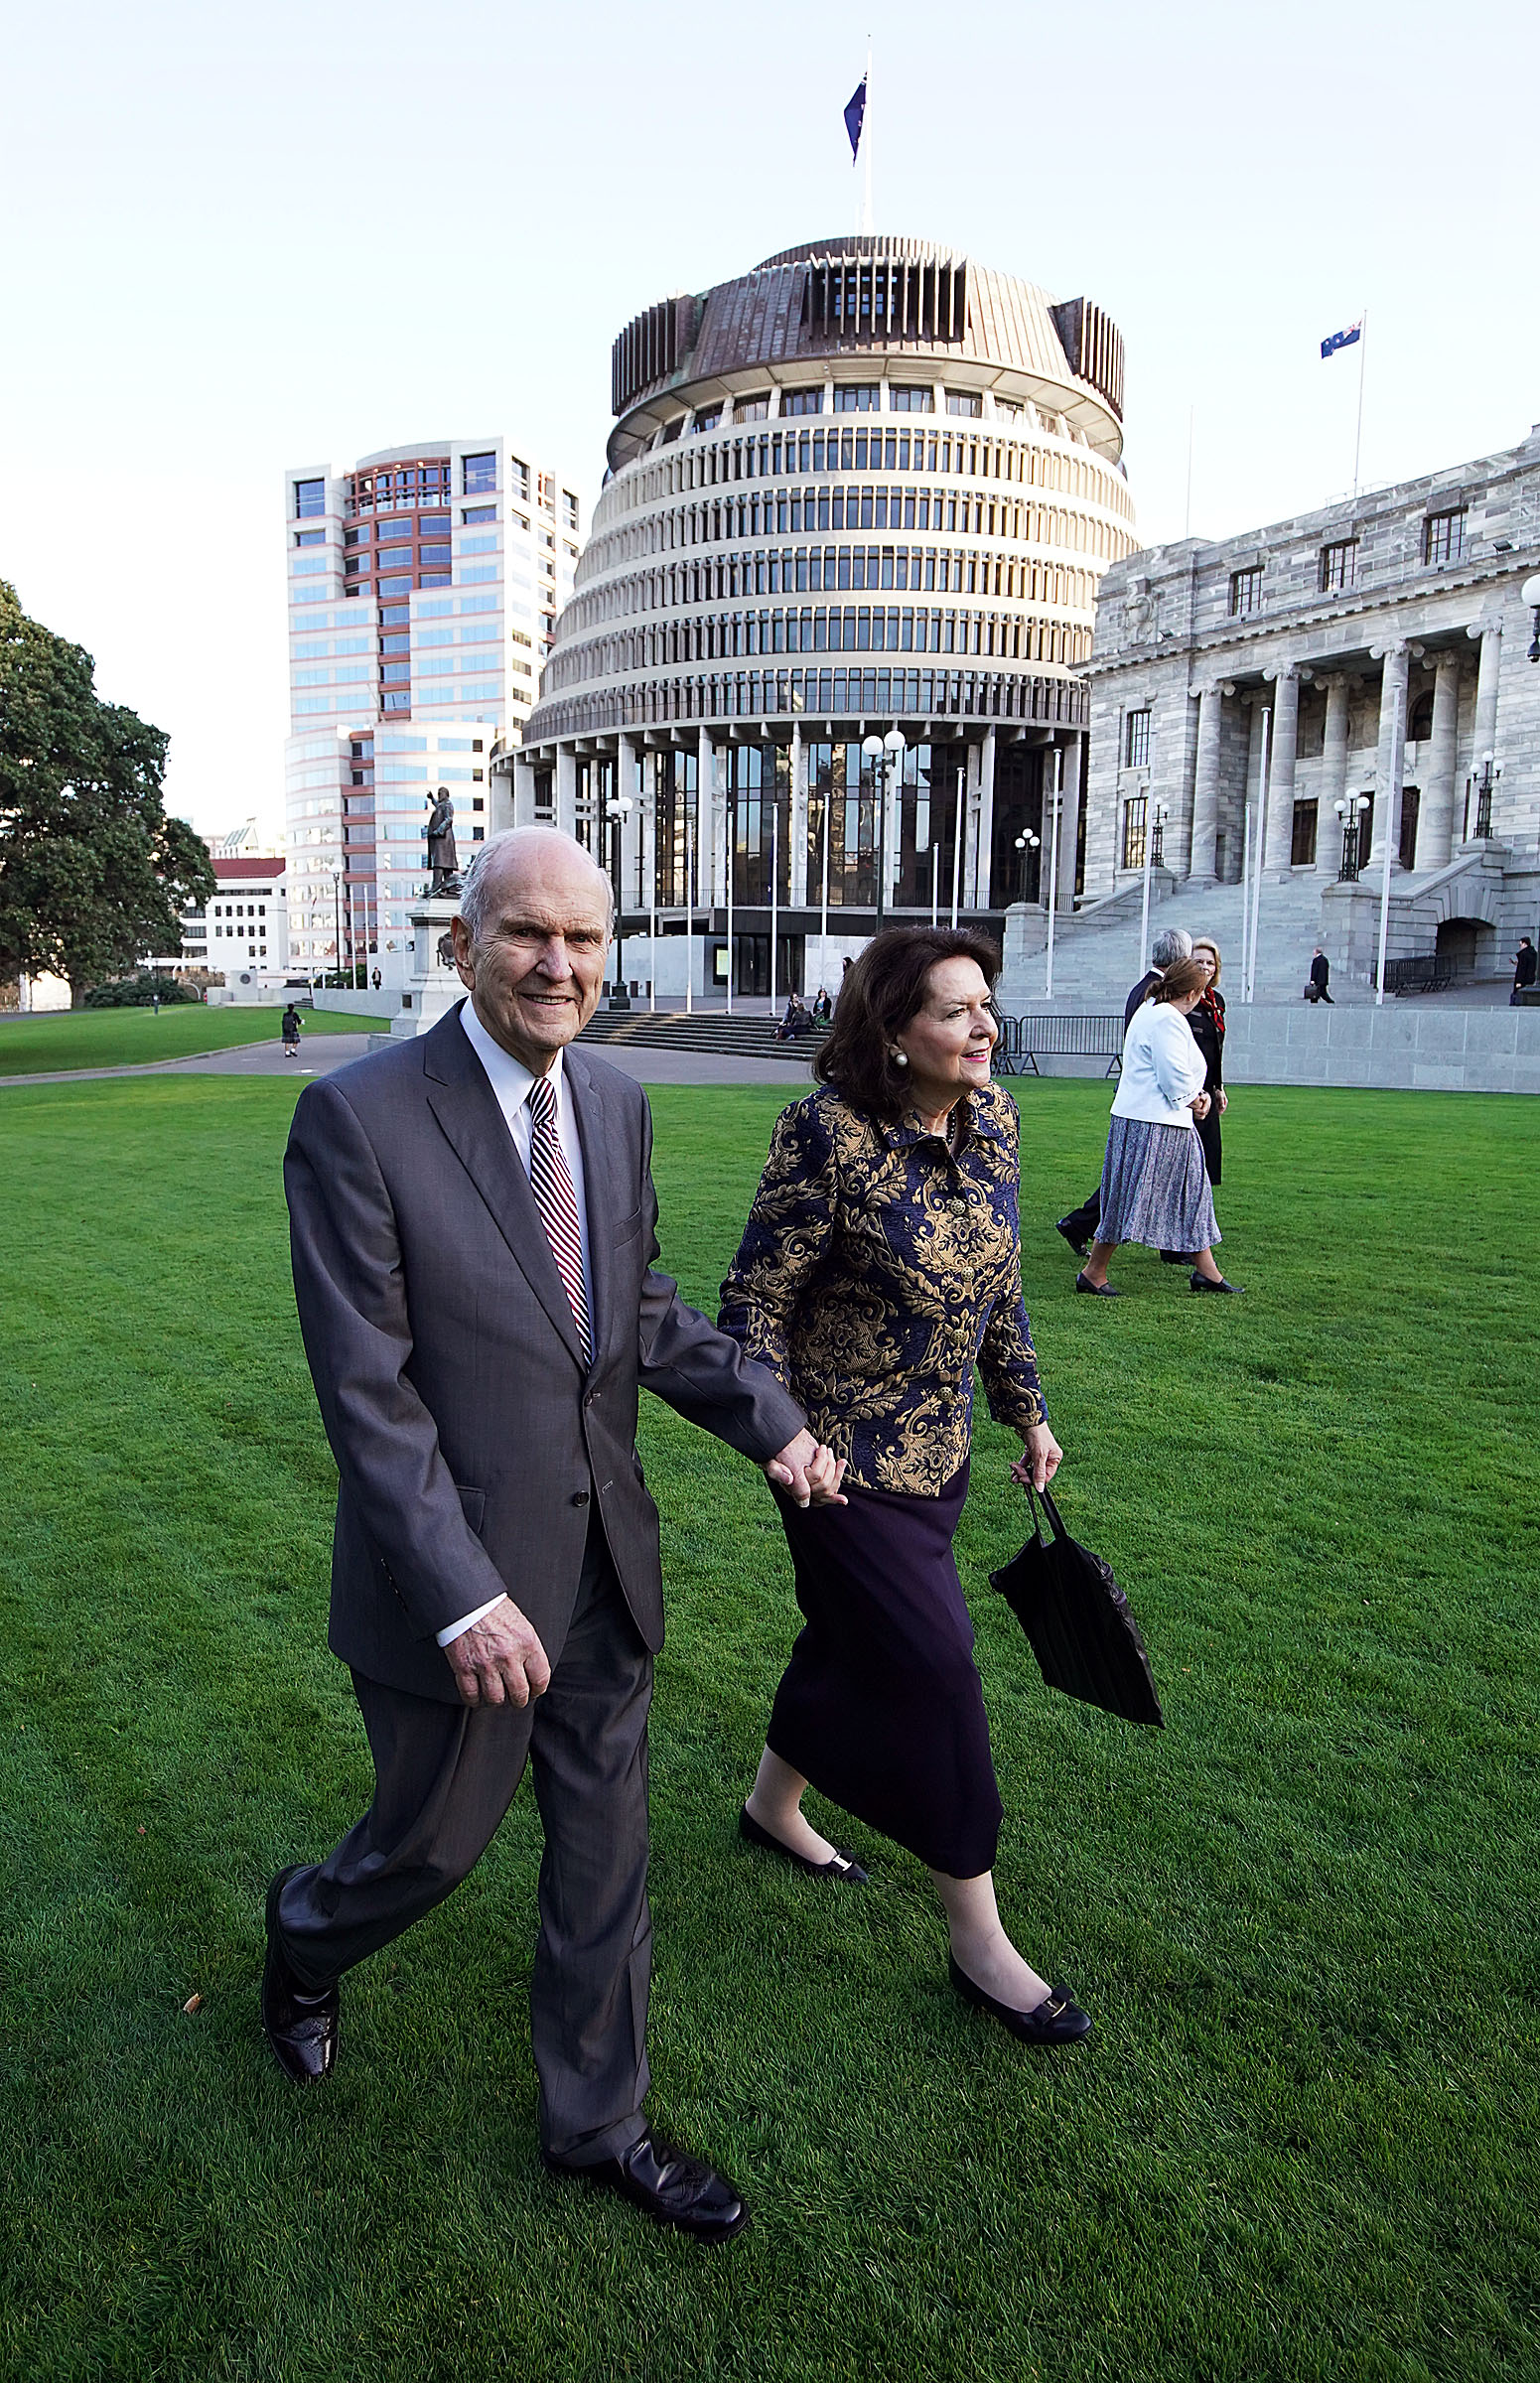 President Russell M. Nelson of The Church of Jesus Christ of Latter-day Saints and his wife, Sister Wendy Nelson, walk past the New Zealand parliament building after meeting with New Zealand Prime Minister Jacinda Ardern in Wellington on Monday, May 20, 2019.